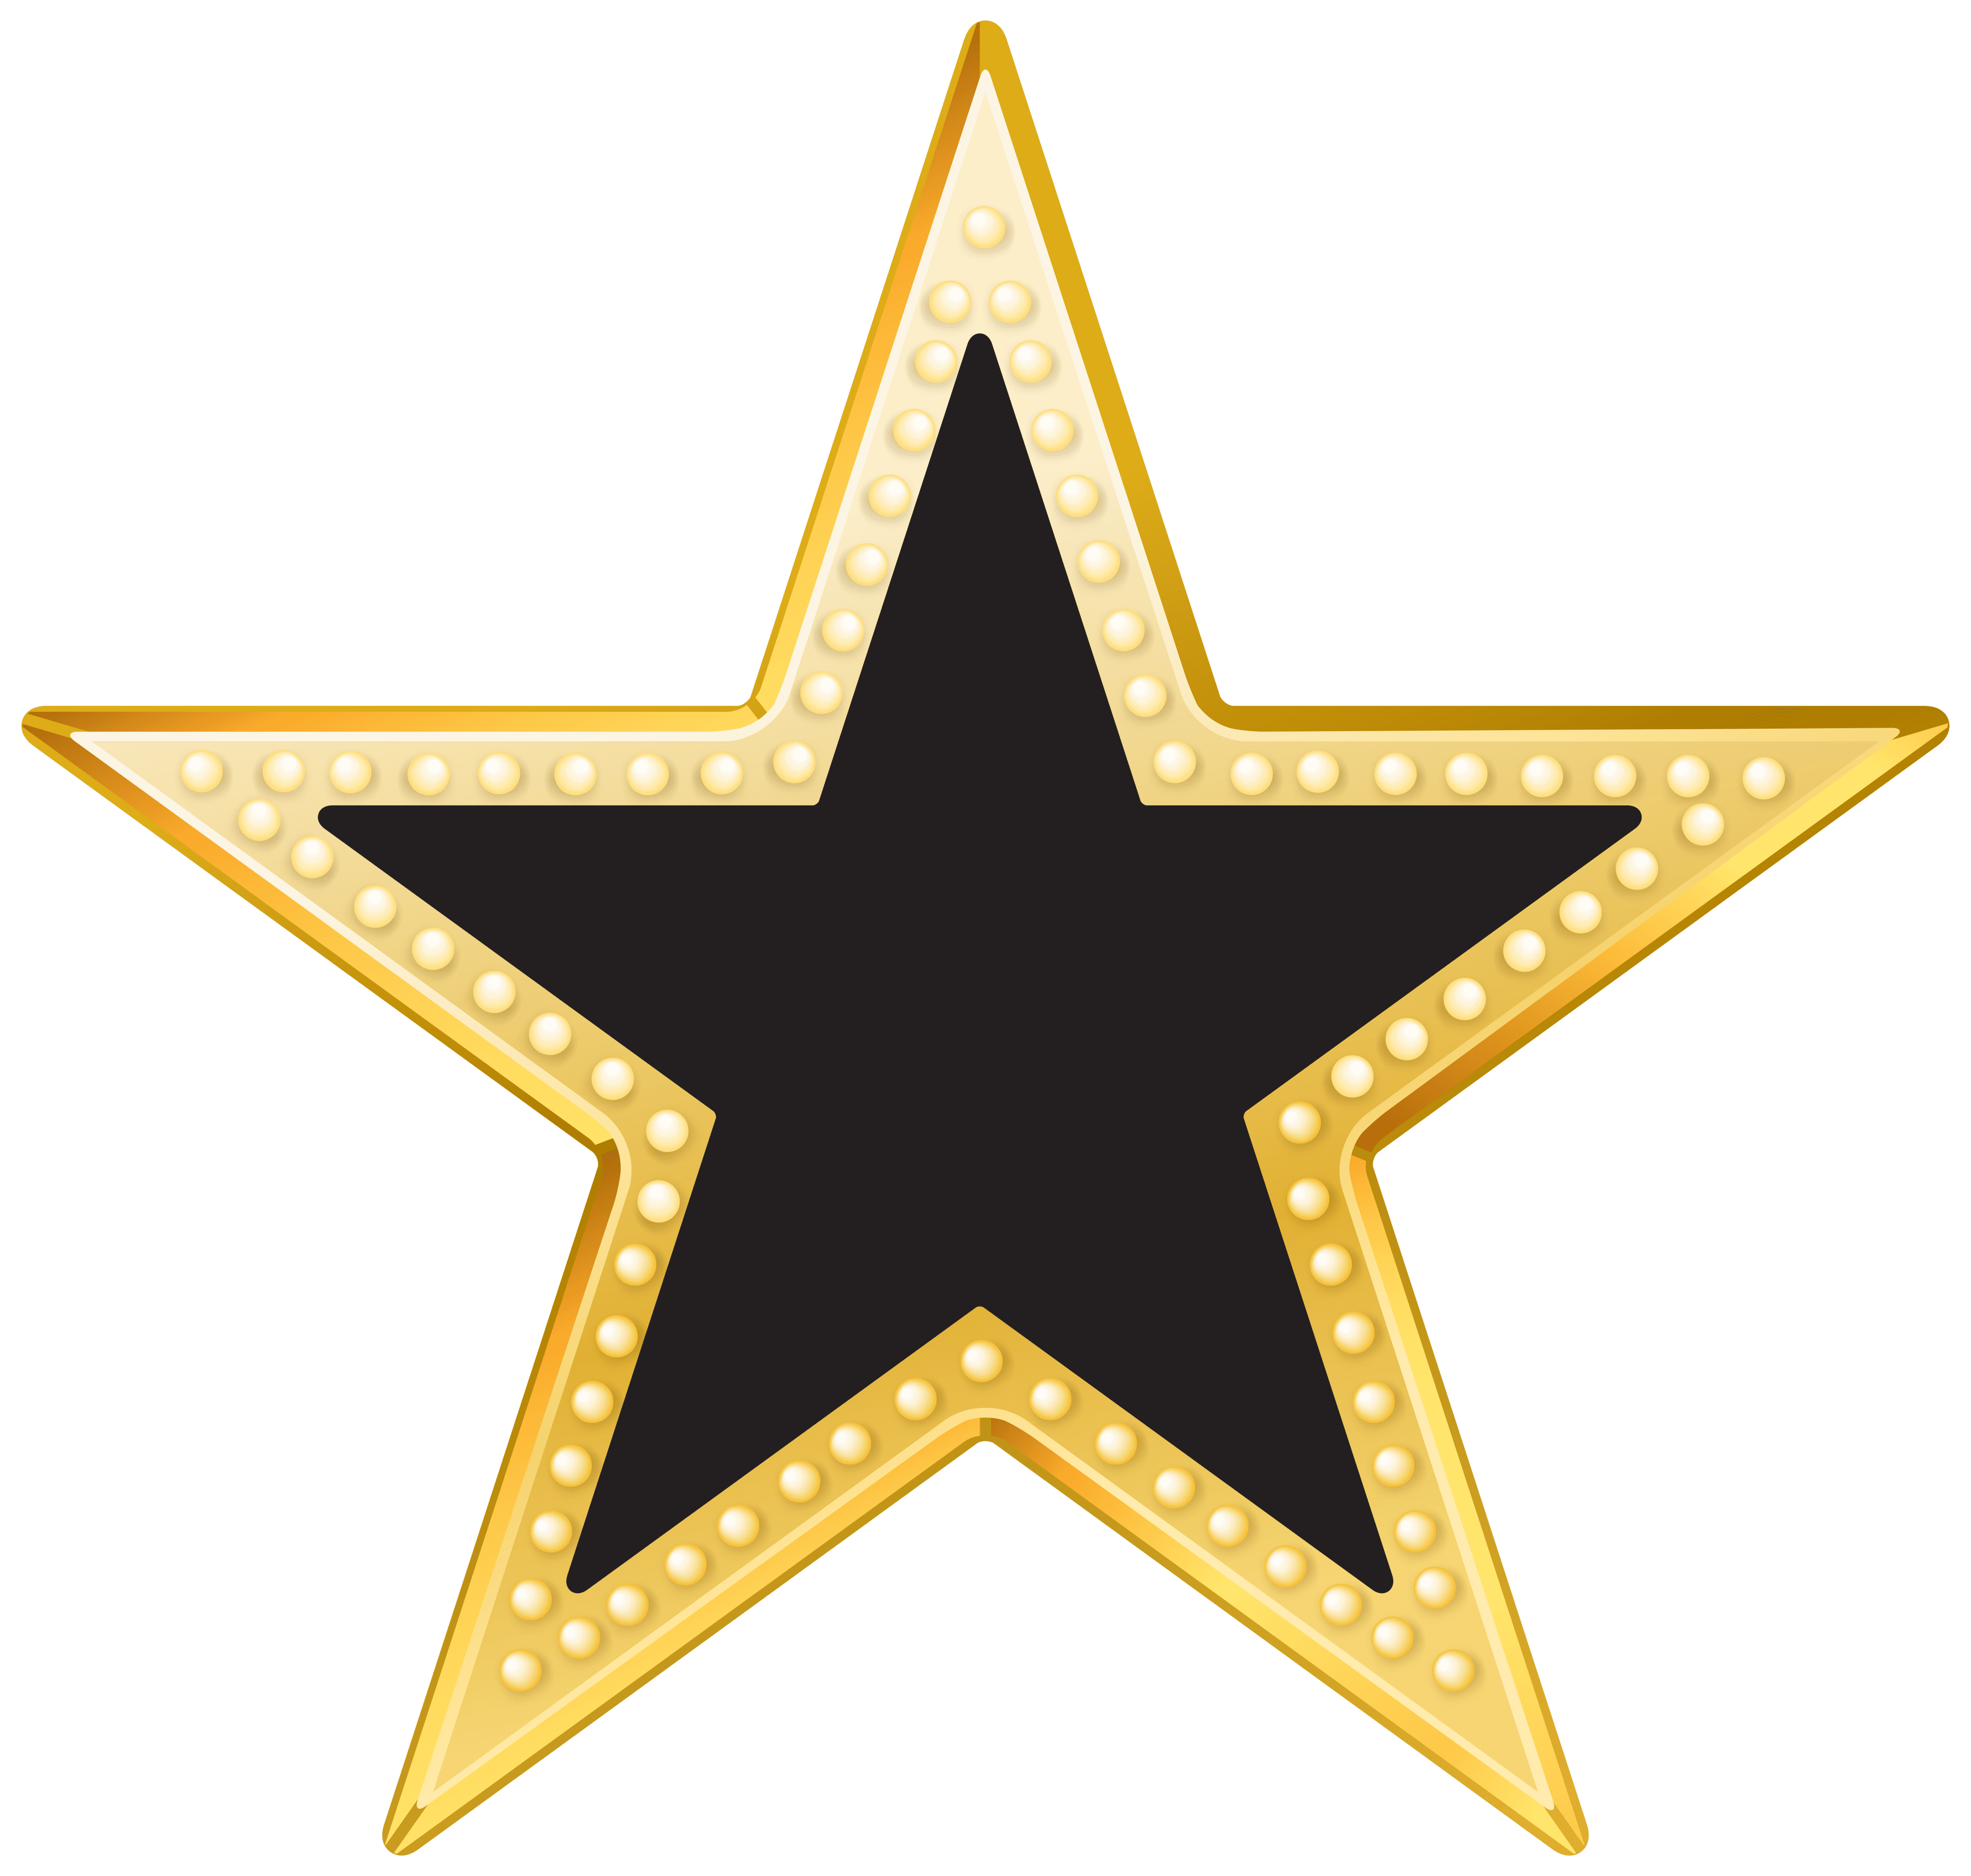 Long star clipart clip art free download Gold And Black Star PNG Transparent Clip Art Image clip art free download